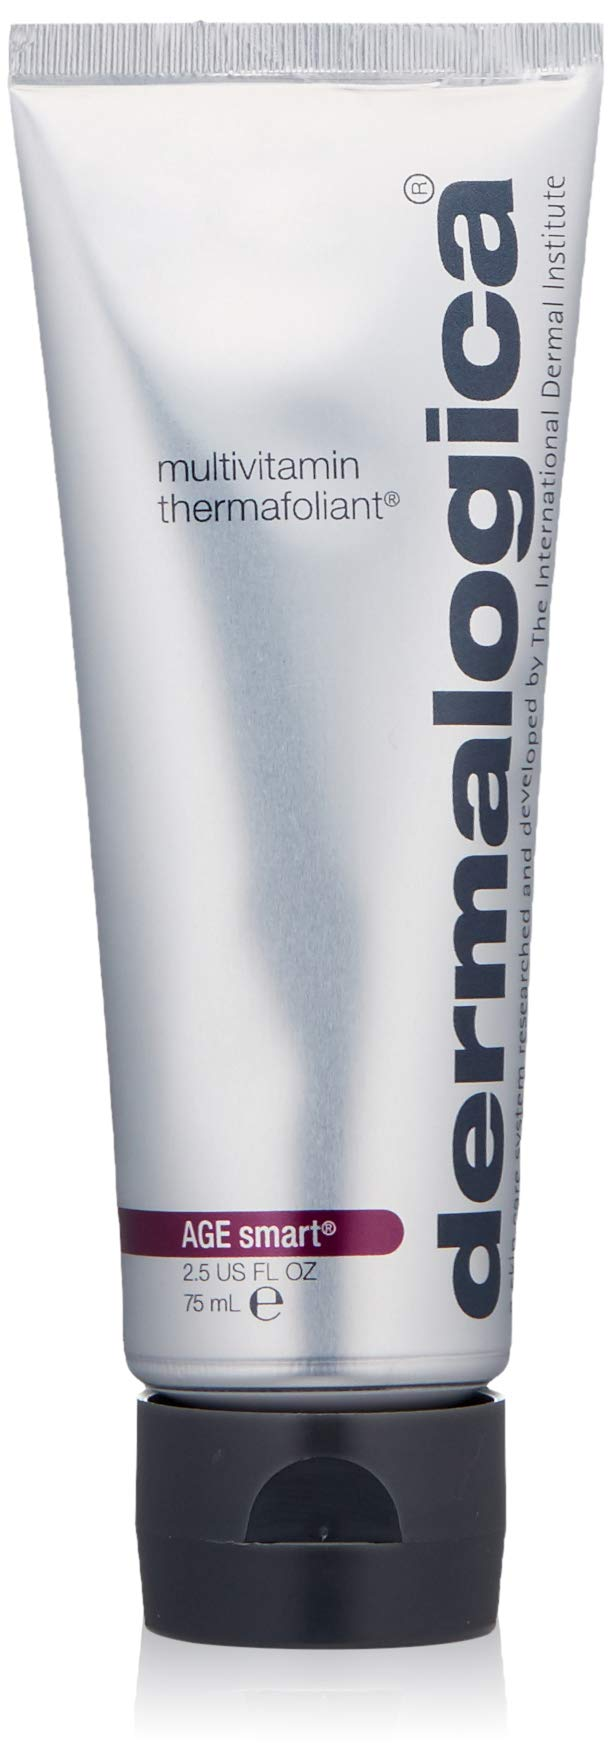 Dermalogica Multivitamin Thermafoliant, 2.5 Fl Oz by DERMALOGICA